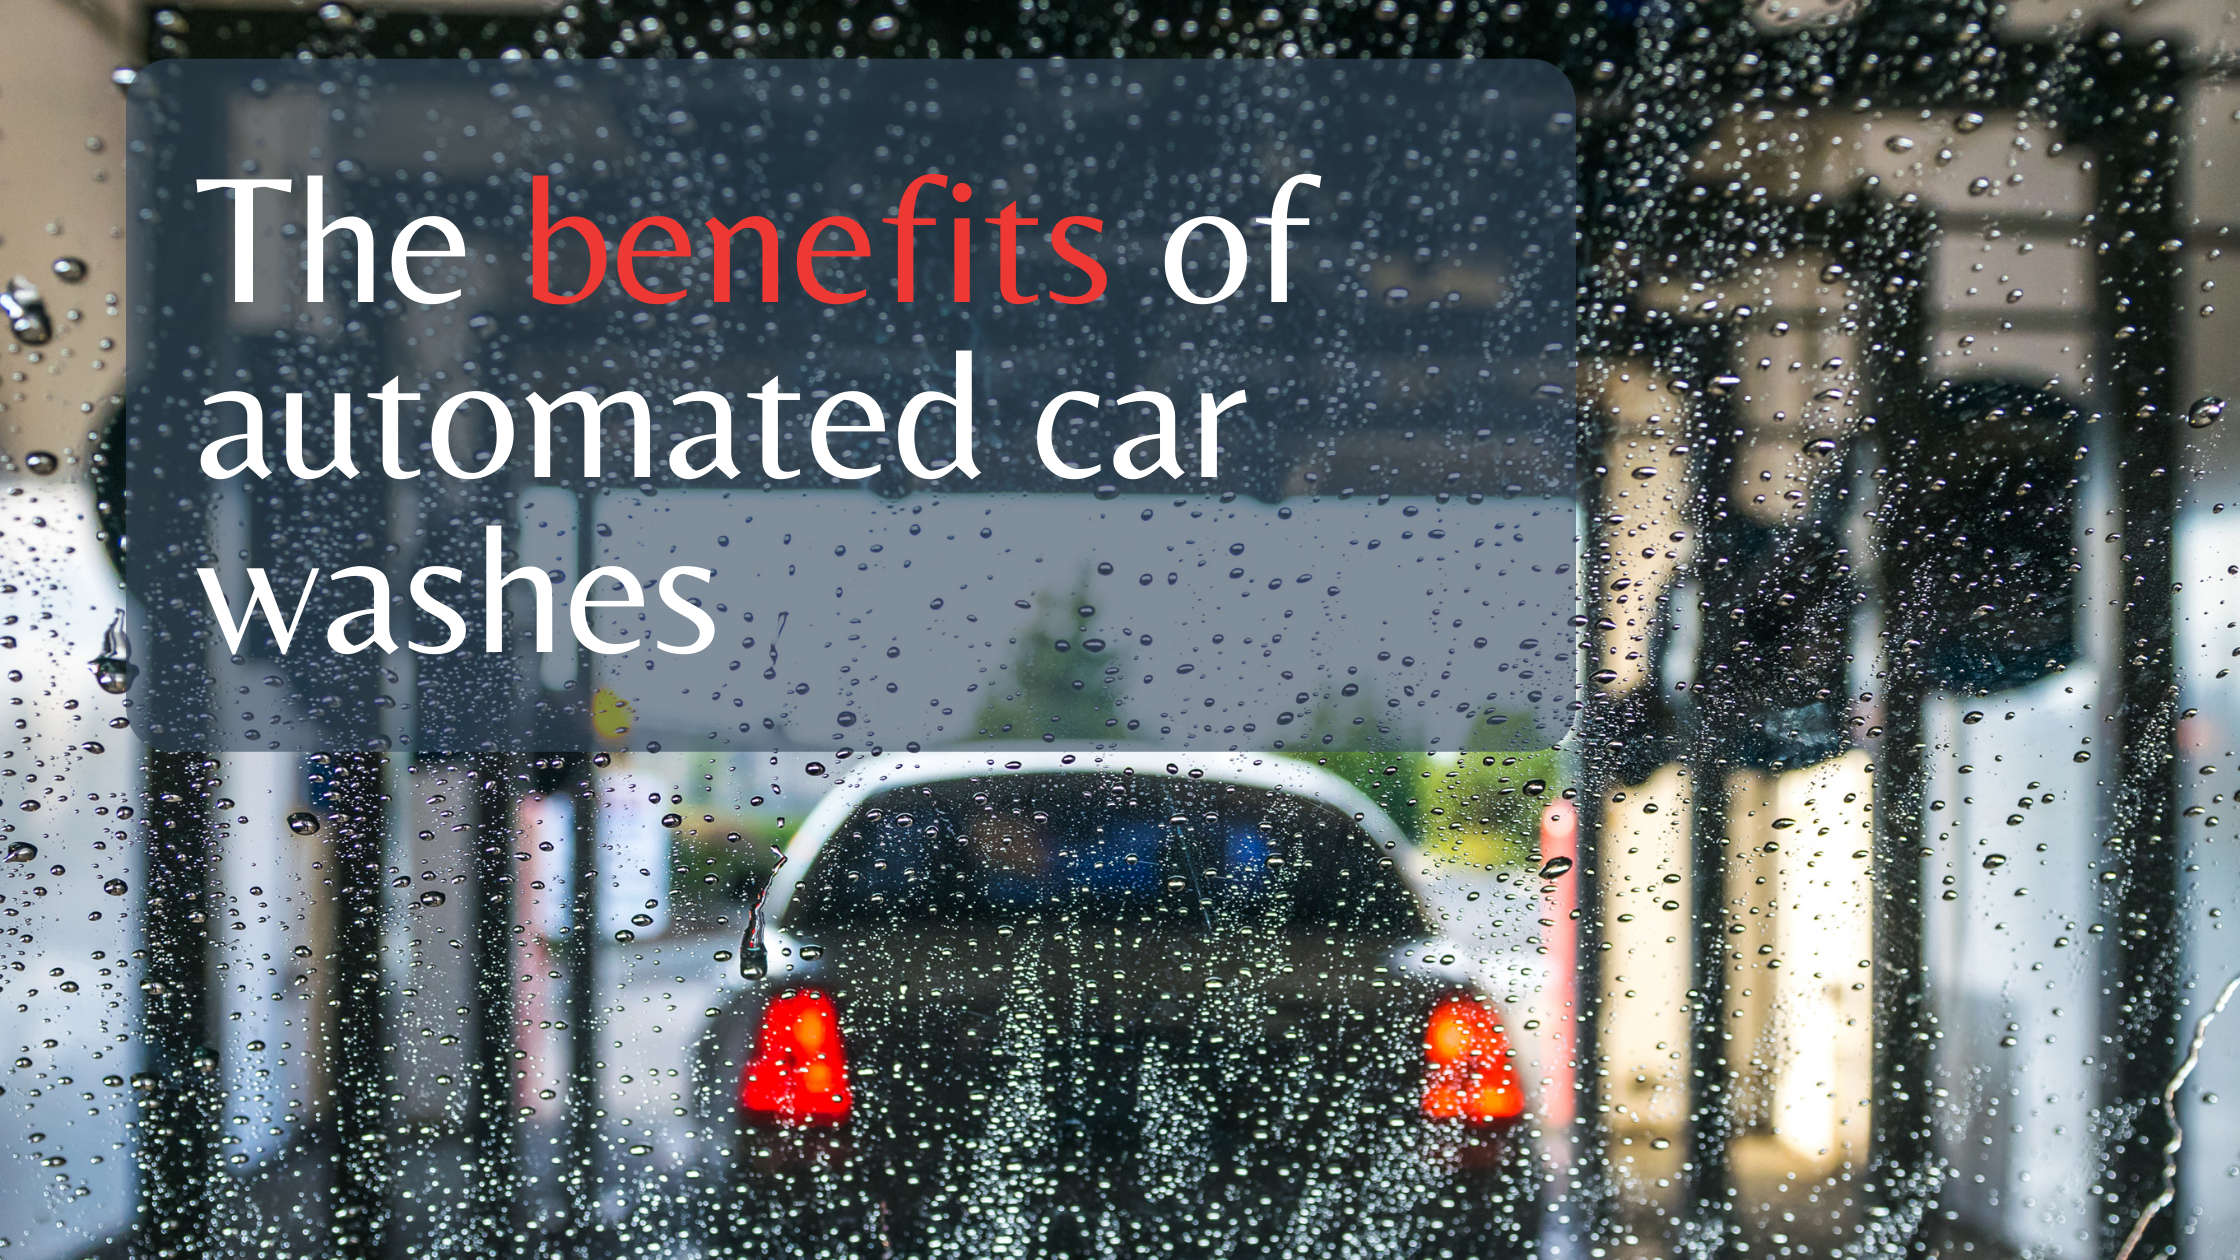 The benefits of automated car washes